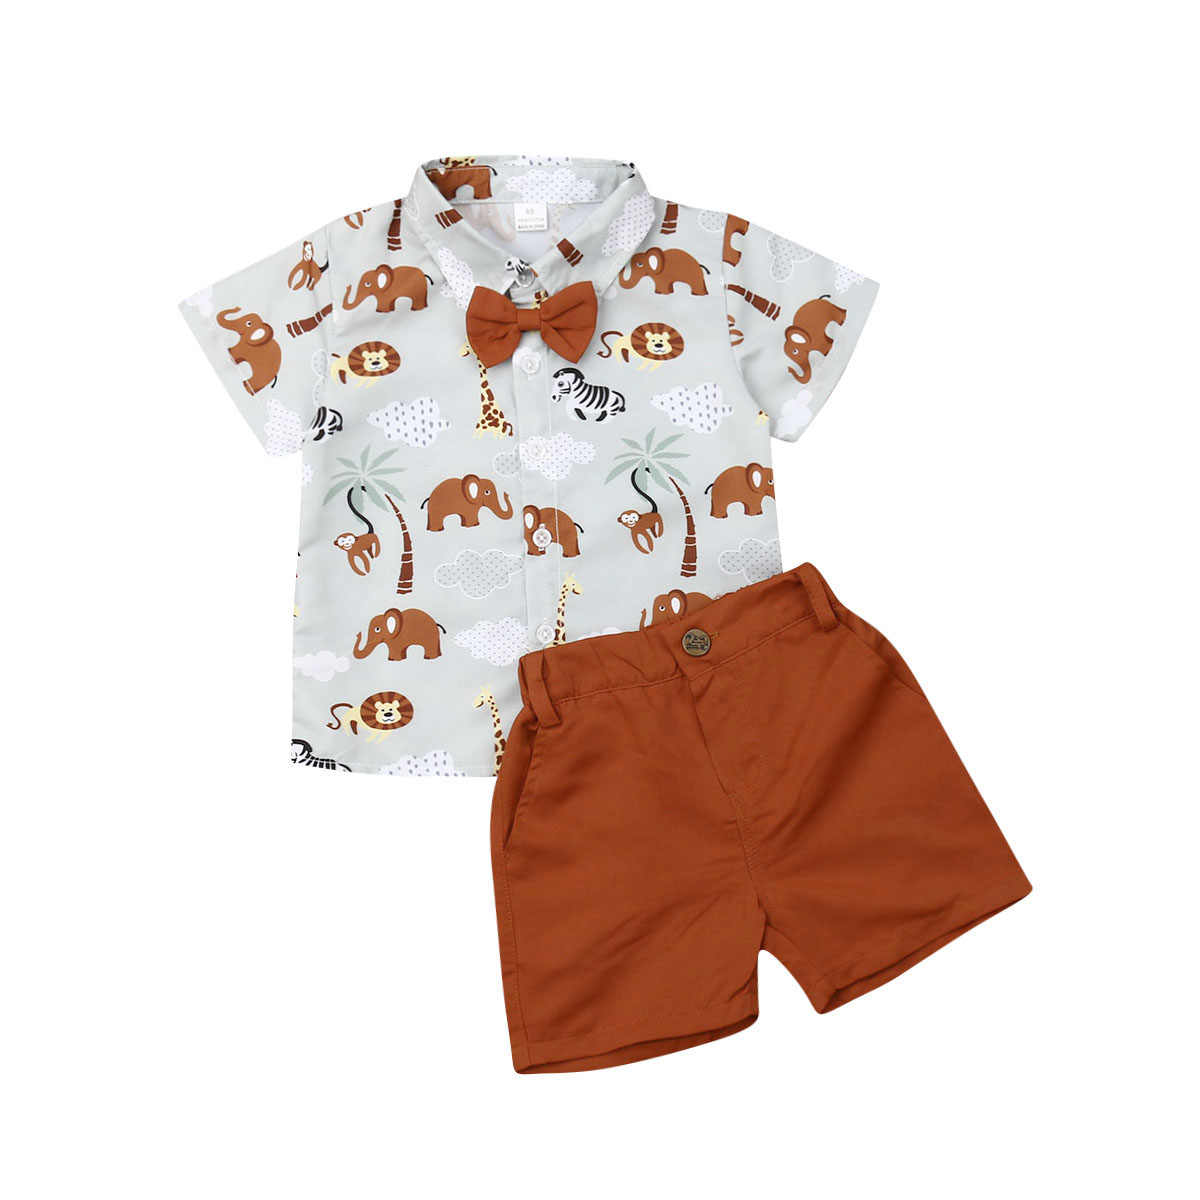 1-6Y Zomer Mode Baby Baby Jongens Kleding Sets Animal Print Shirts Tops + Solid Brown Shorts